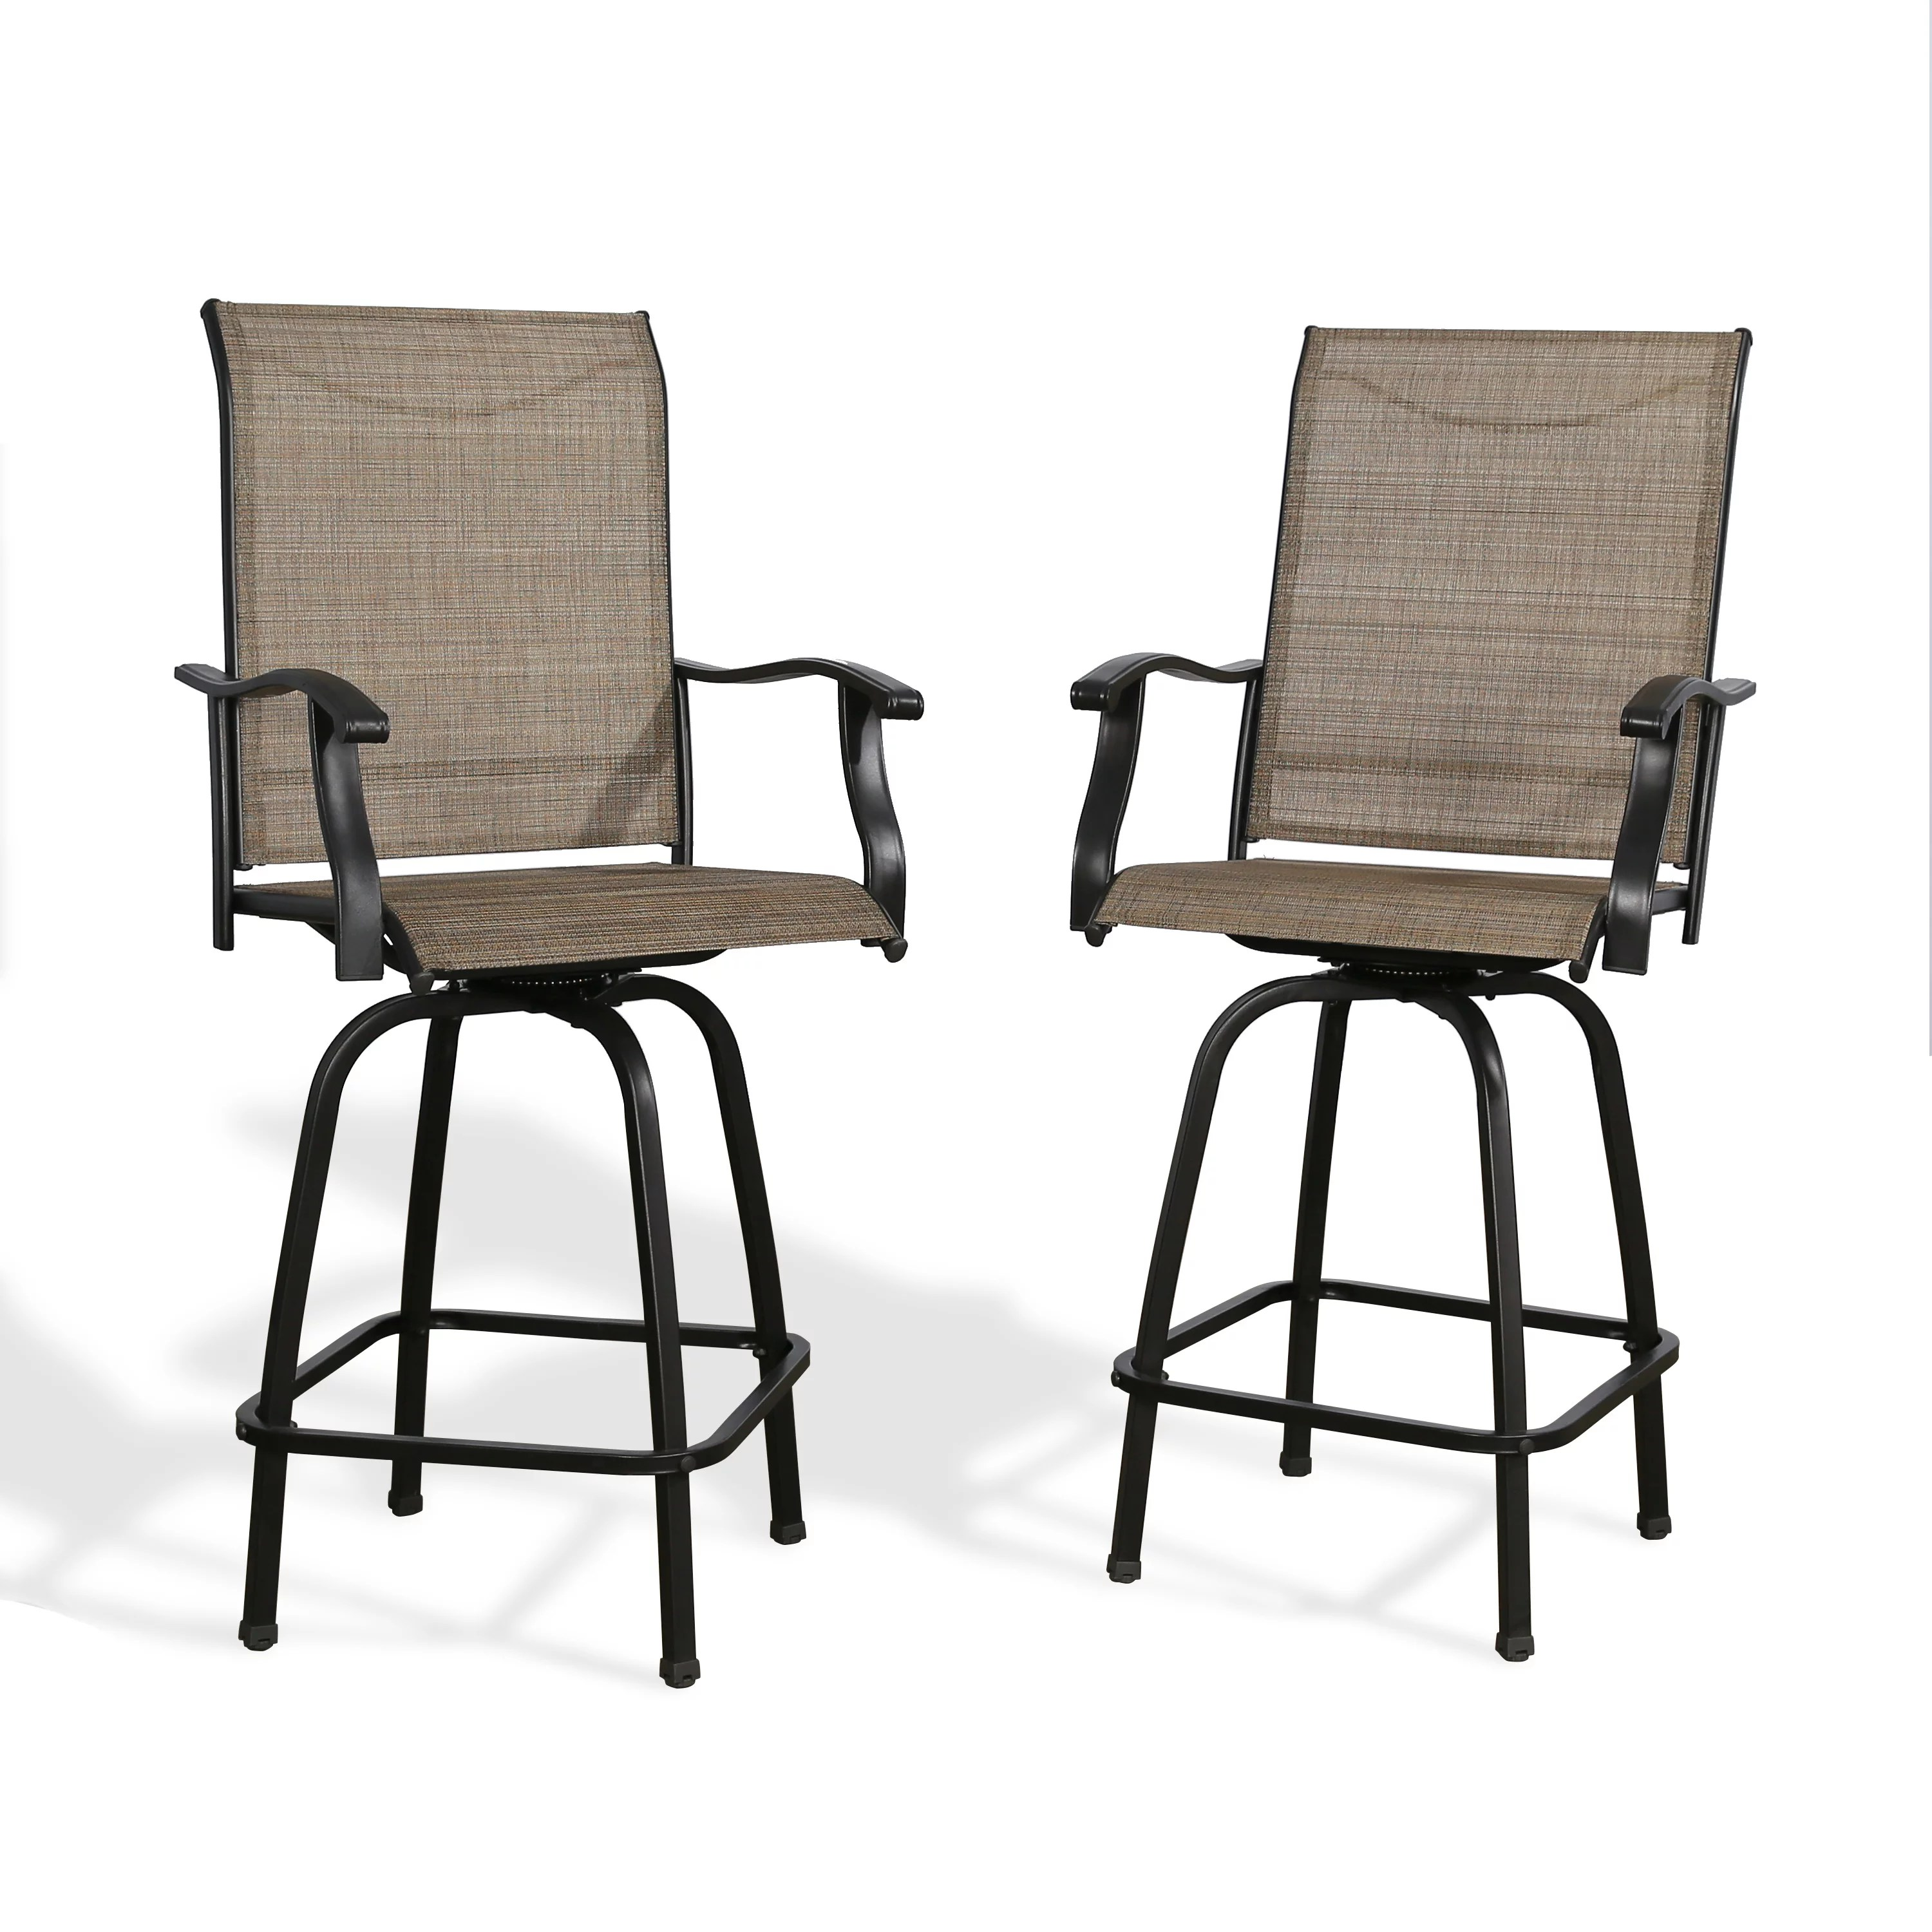 ulax furniture outdoor 2 piece swivel bar stools high patio chairs with sling seat